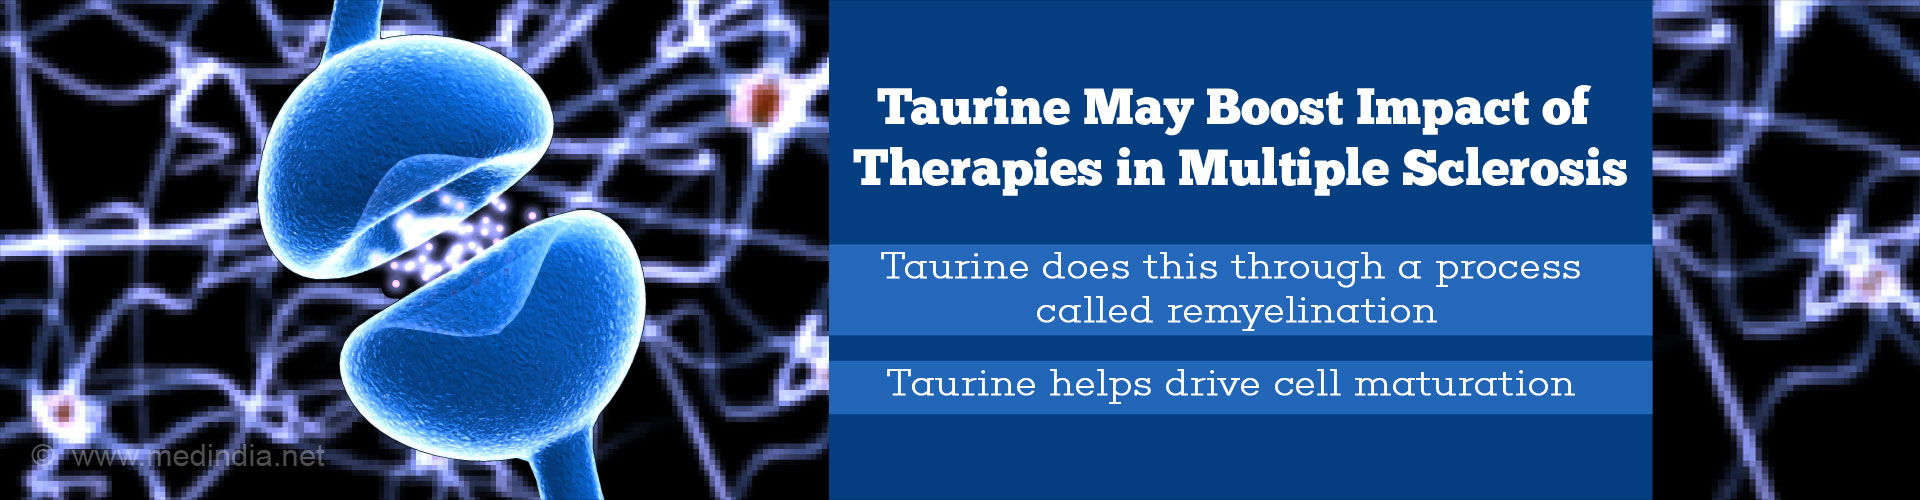 Taurine May Boost Impact of Therapies in Multiple Sclerosis